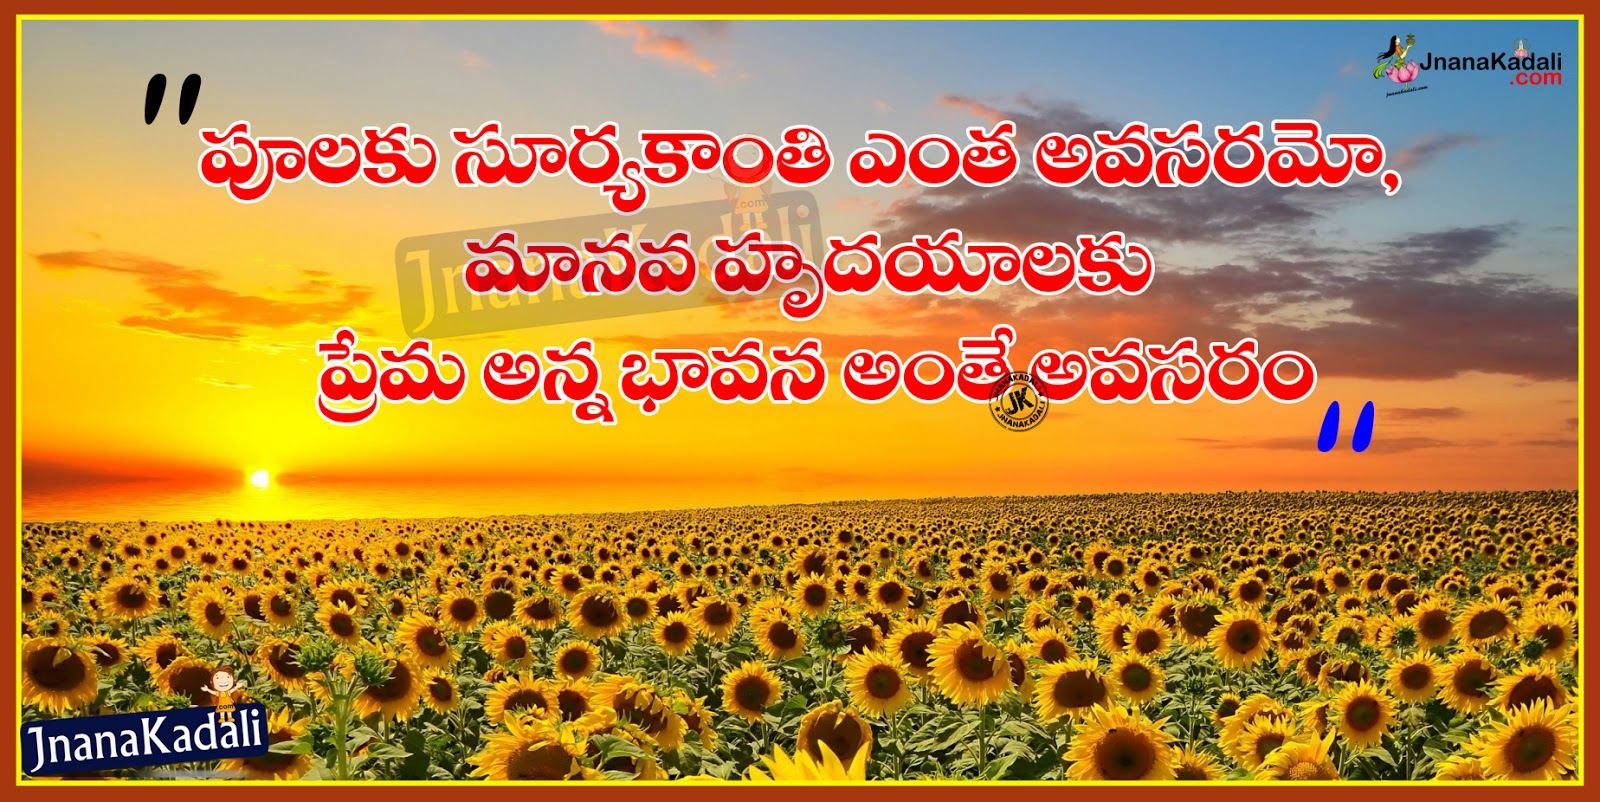 Top Quotes About Life And Happiness Telugu Best Inspiring Love Life Motivated Thoughts With Hd